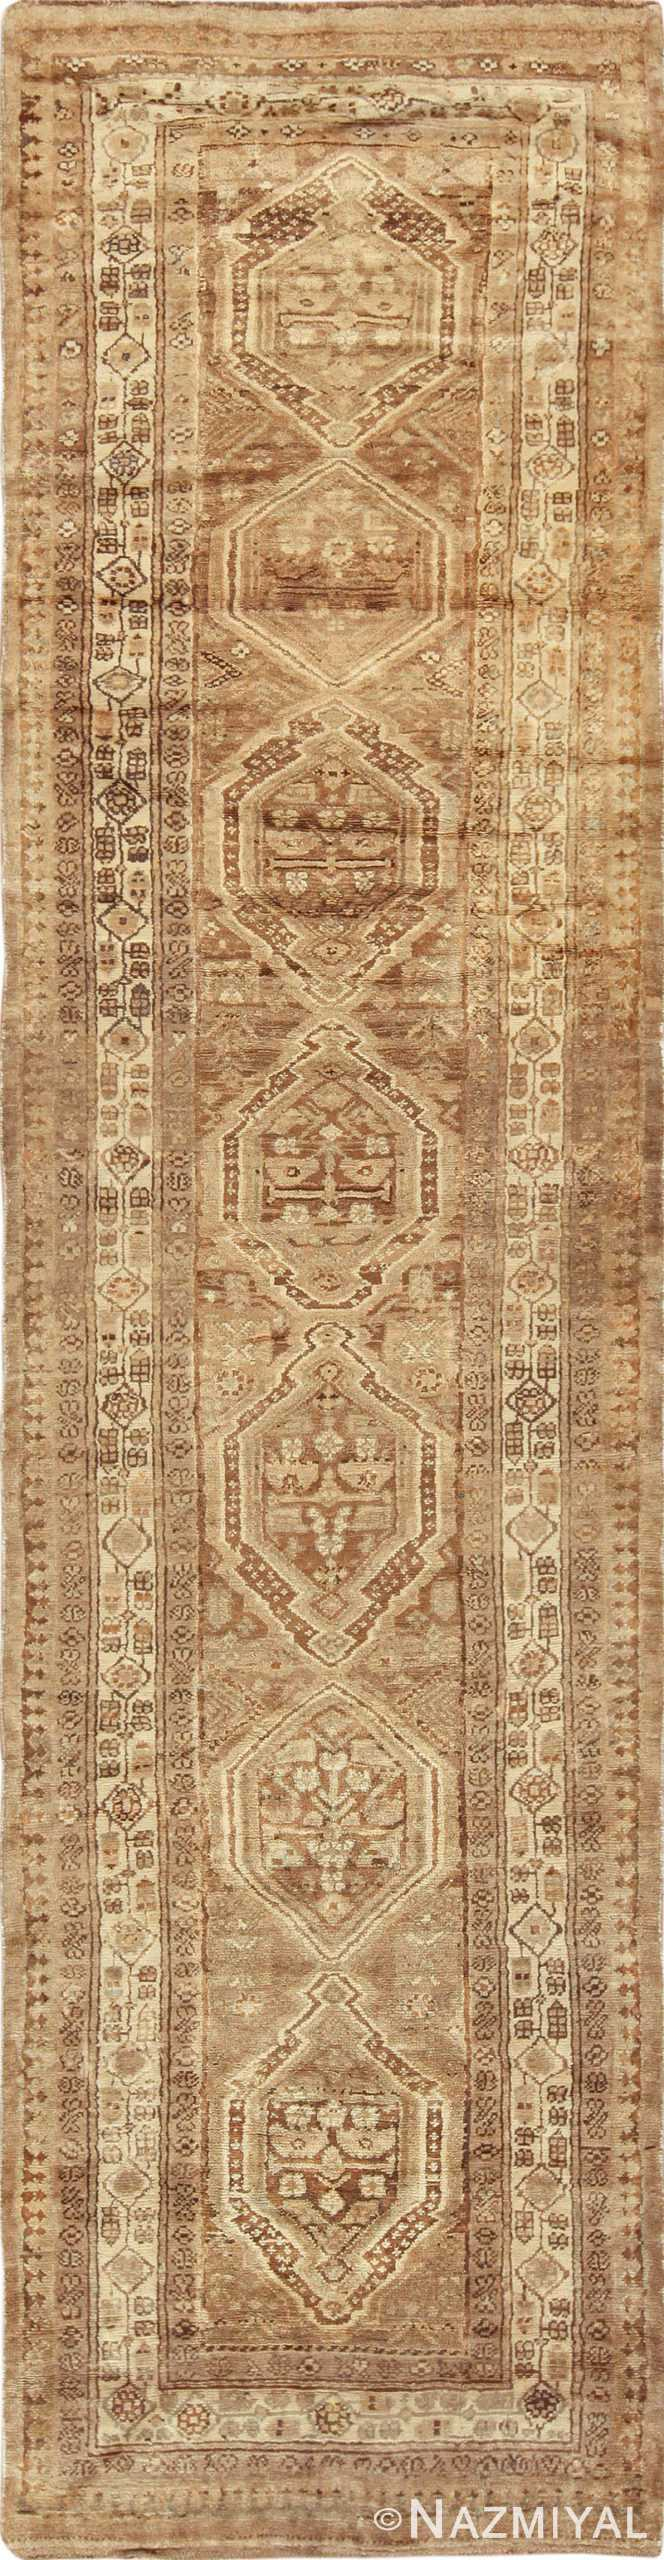 Neutral Earth Tone Vintage Persian Malayer Runner Rug 49713 by Nazmiyal